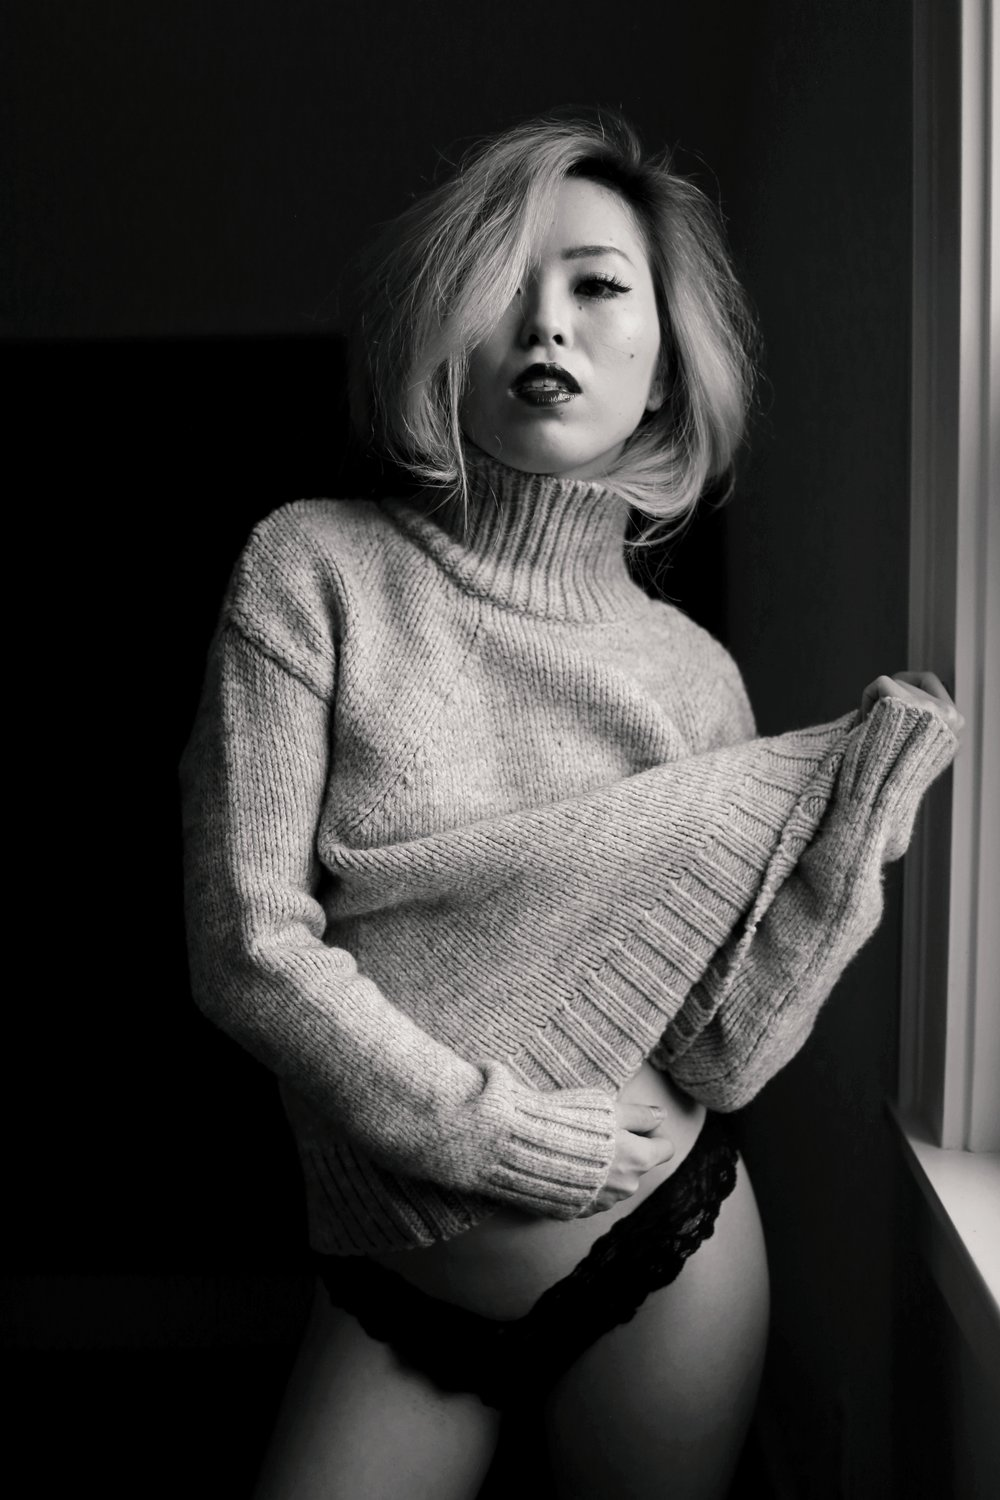 Boudoir+Photo-black+and+white+photography-sweater+weather-turtle+neck+sweater-black+lingerie-dark+lipstick-japanese-Aika's+Love+Closet-Seattle+model-Seattle+Style+blogger+6.jpeg